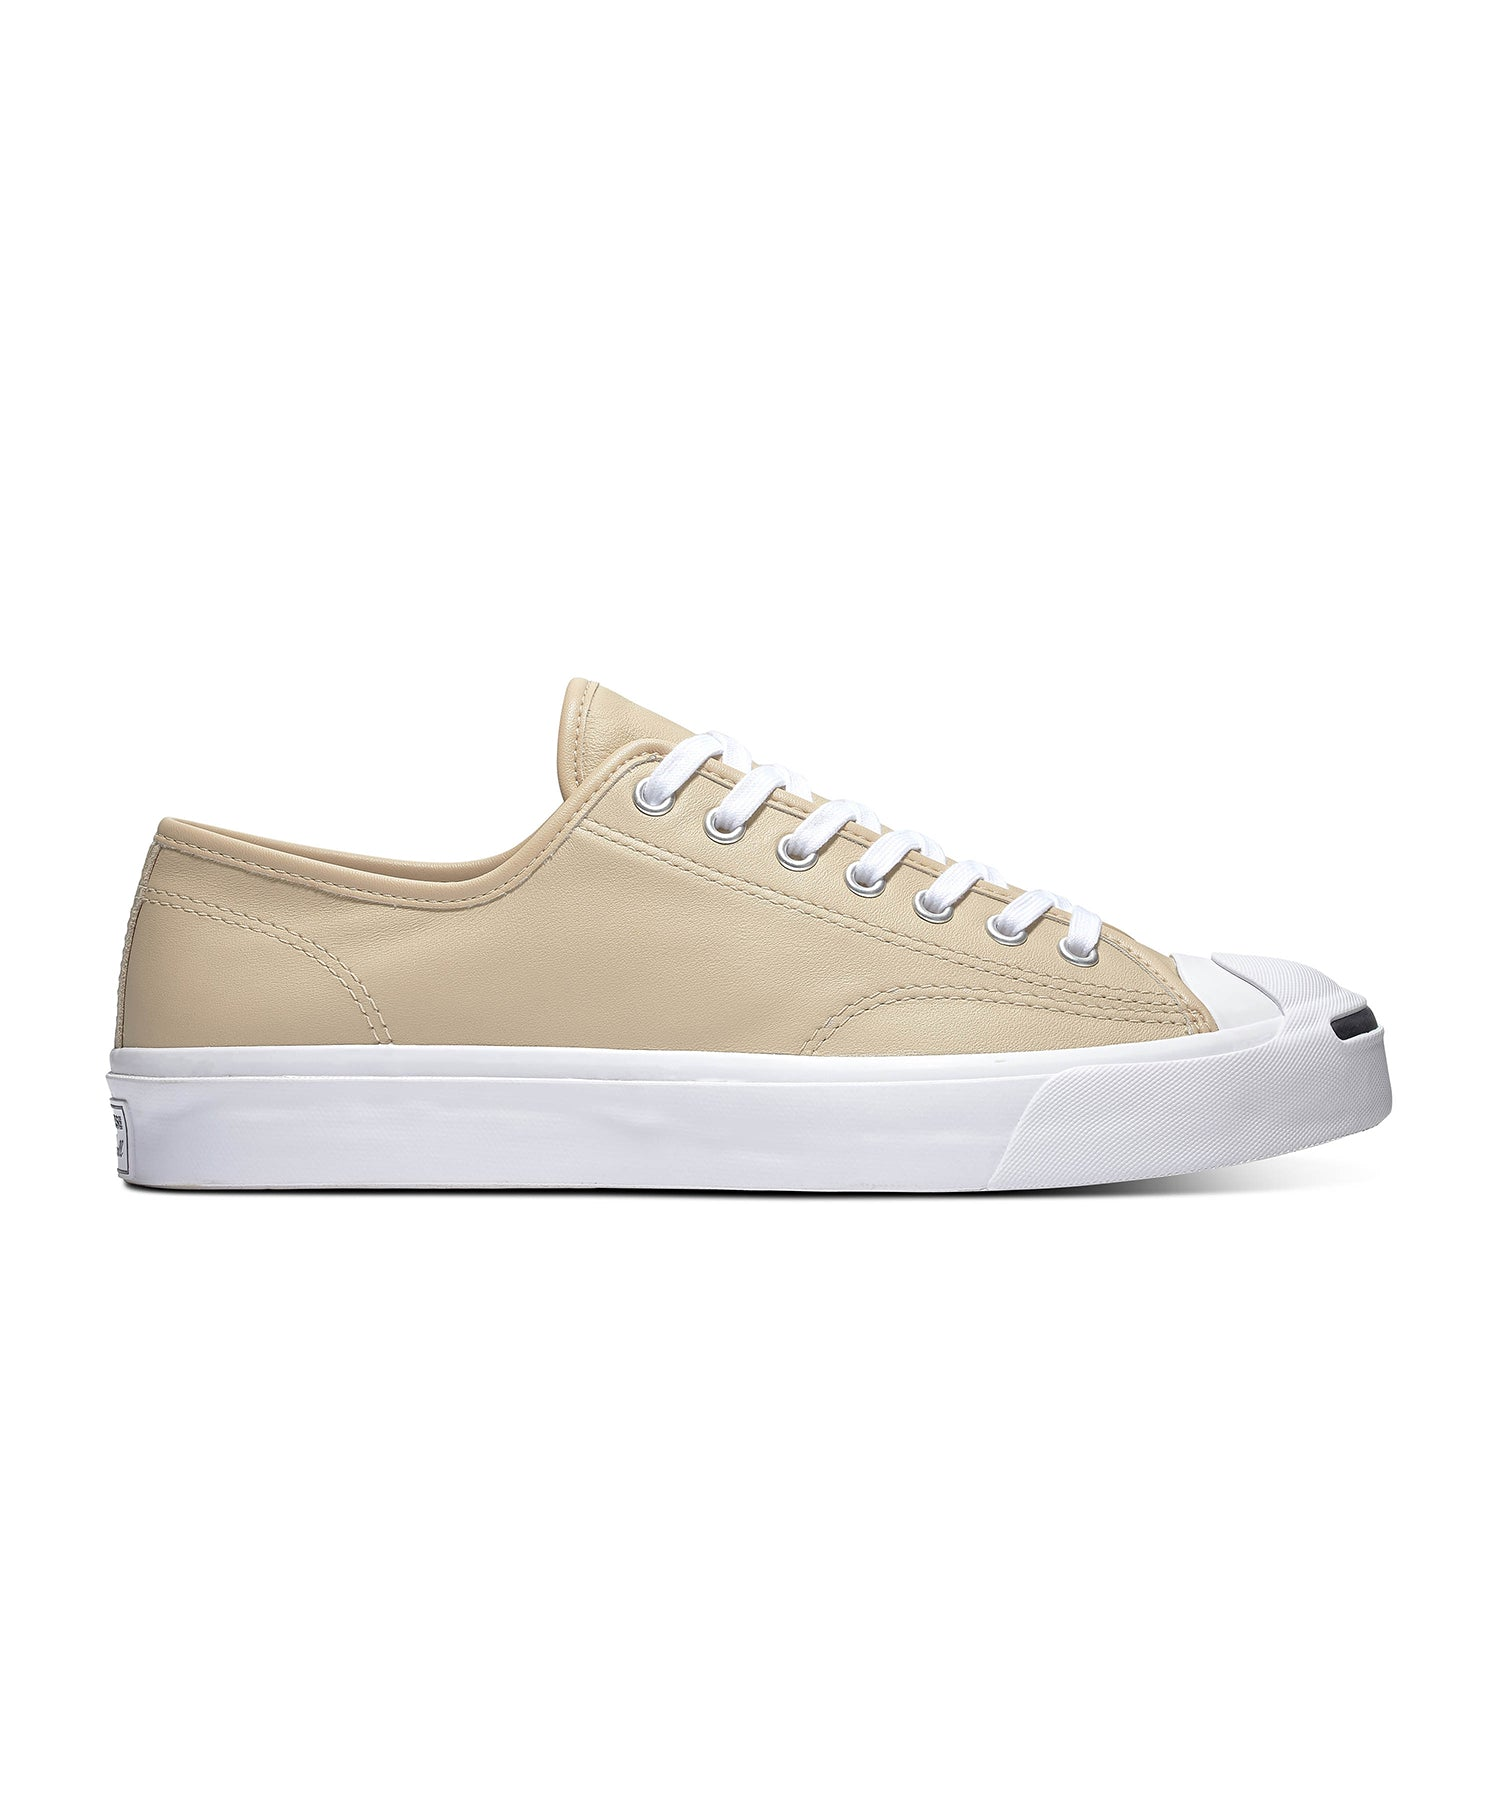 Converse Leather Jack Purcell in Desert